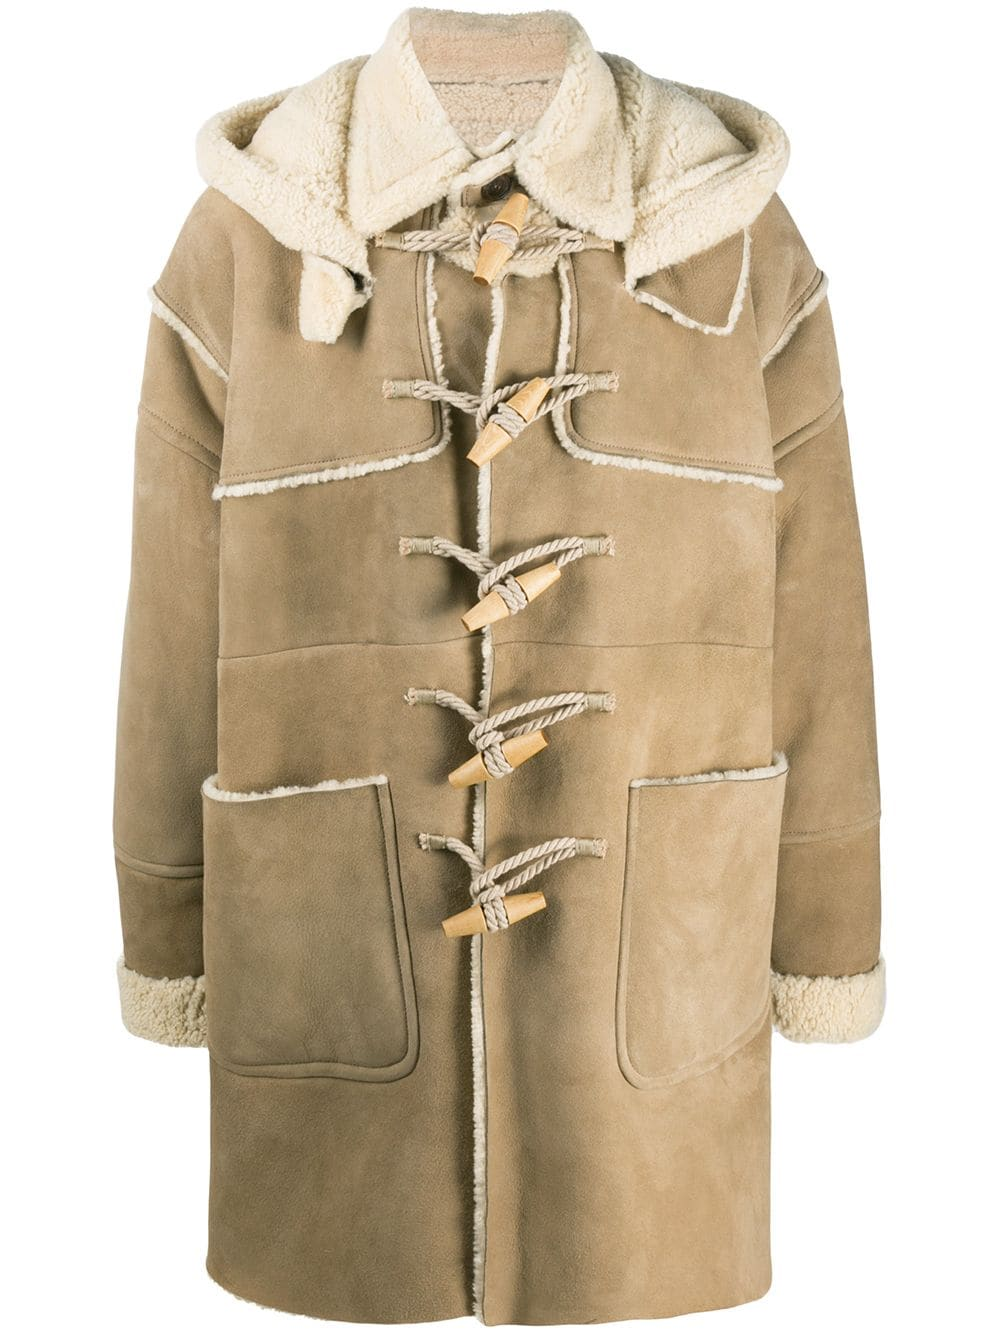 Dsquared2 Dufflecoat mit Shearling-Futter - Nude von Dsquared2